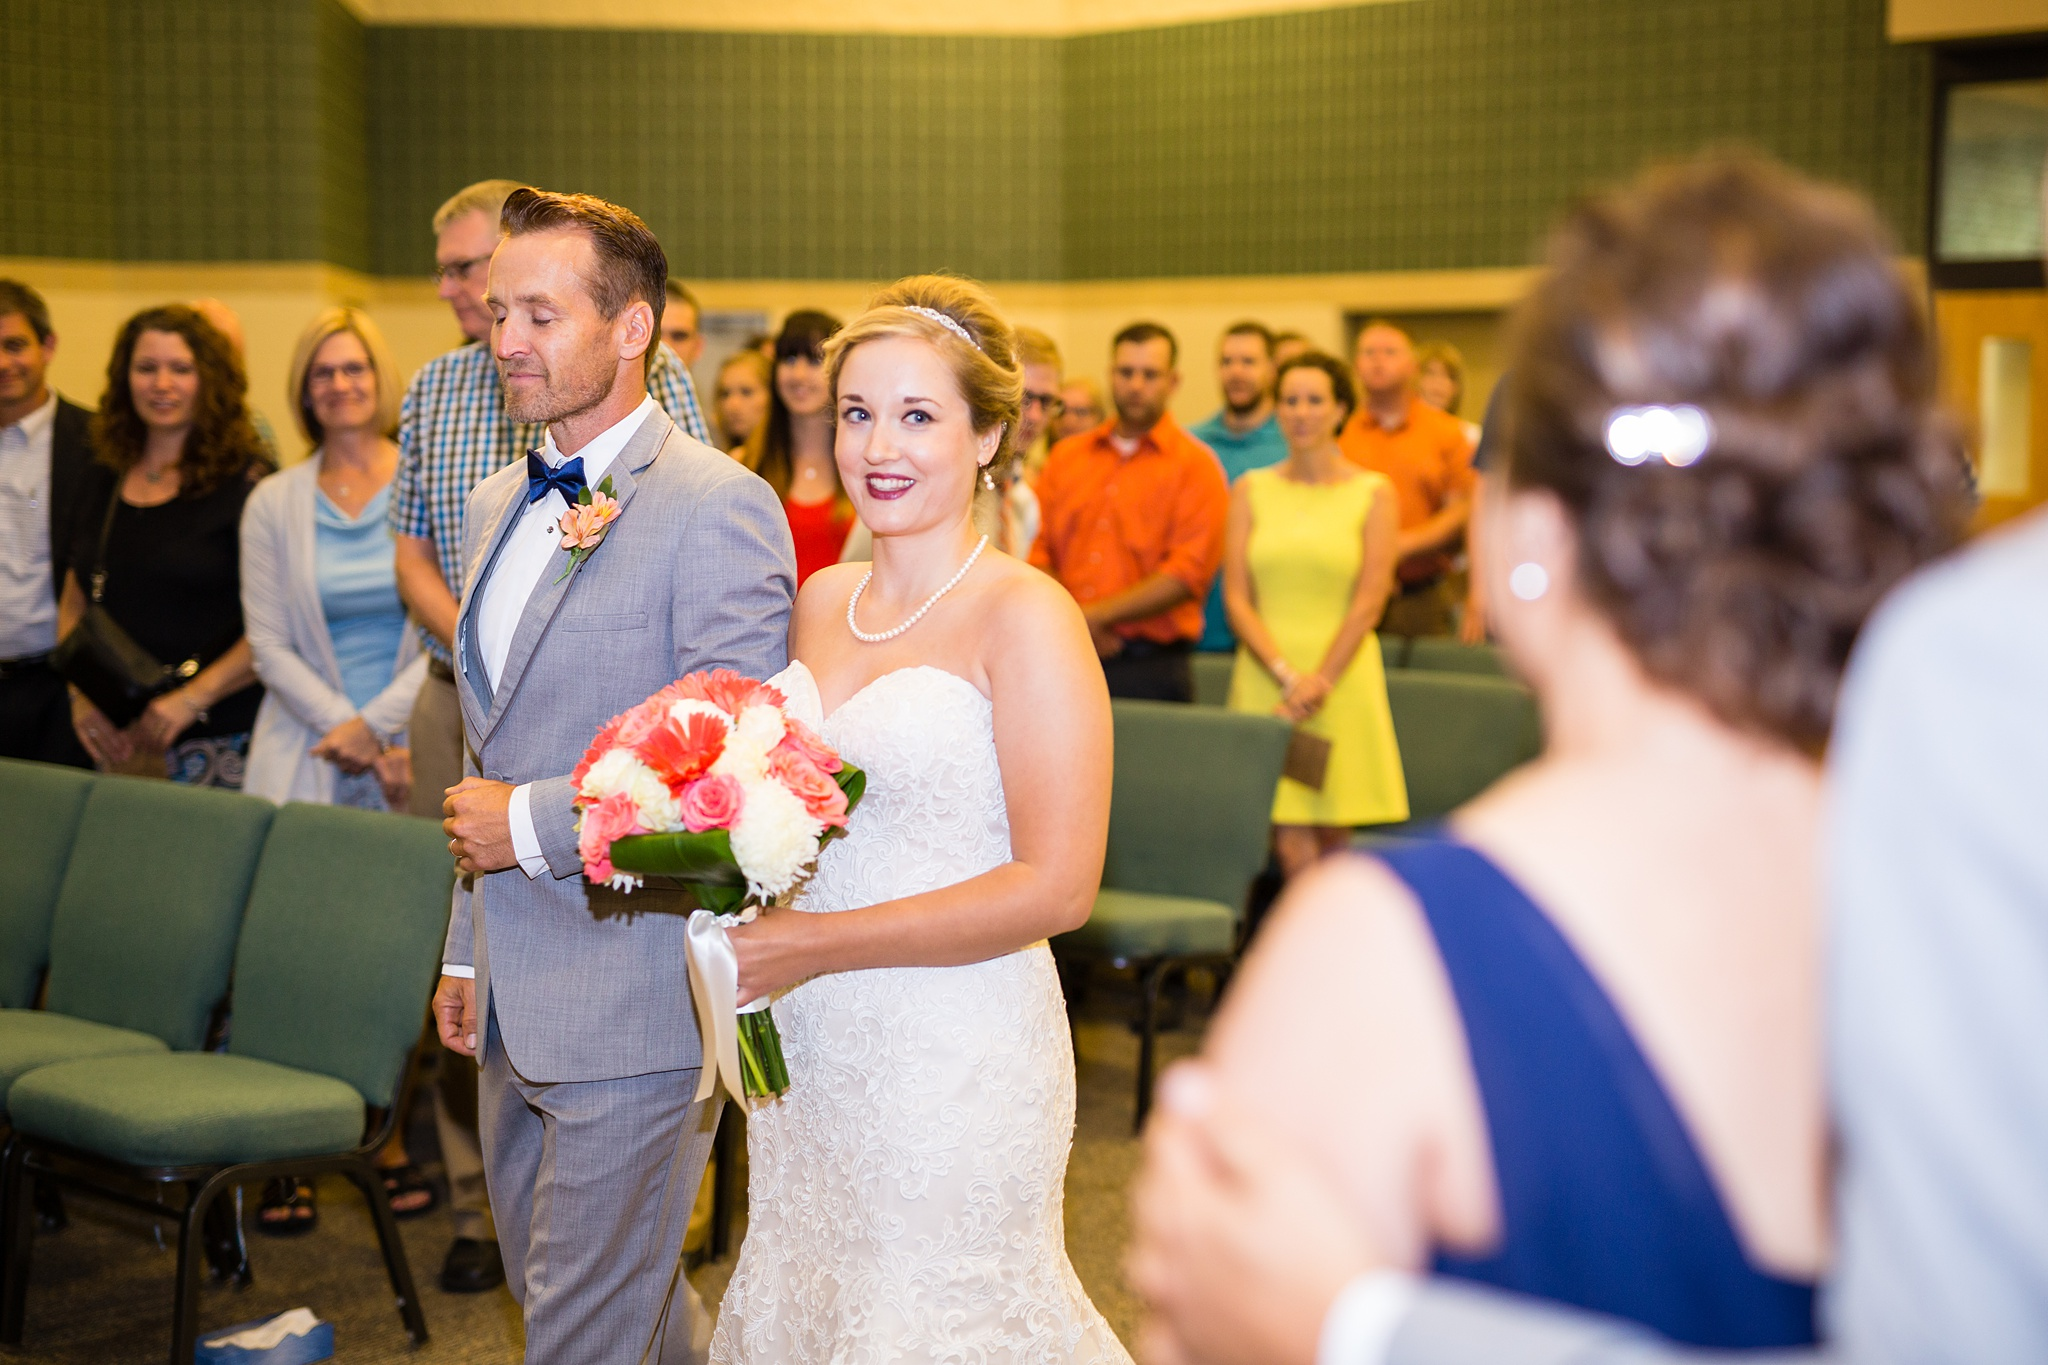 Brandon_Shafer_Photography_Grand_Rapids_Bride_Groom_0019.jpg